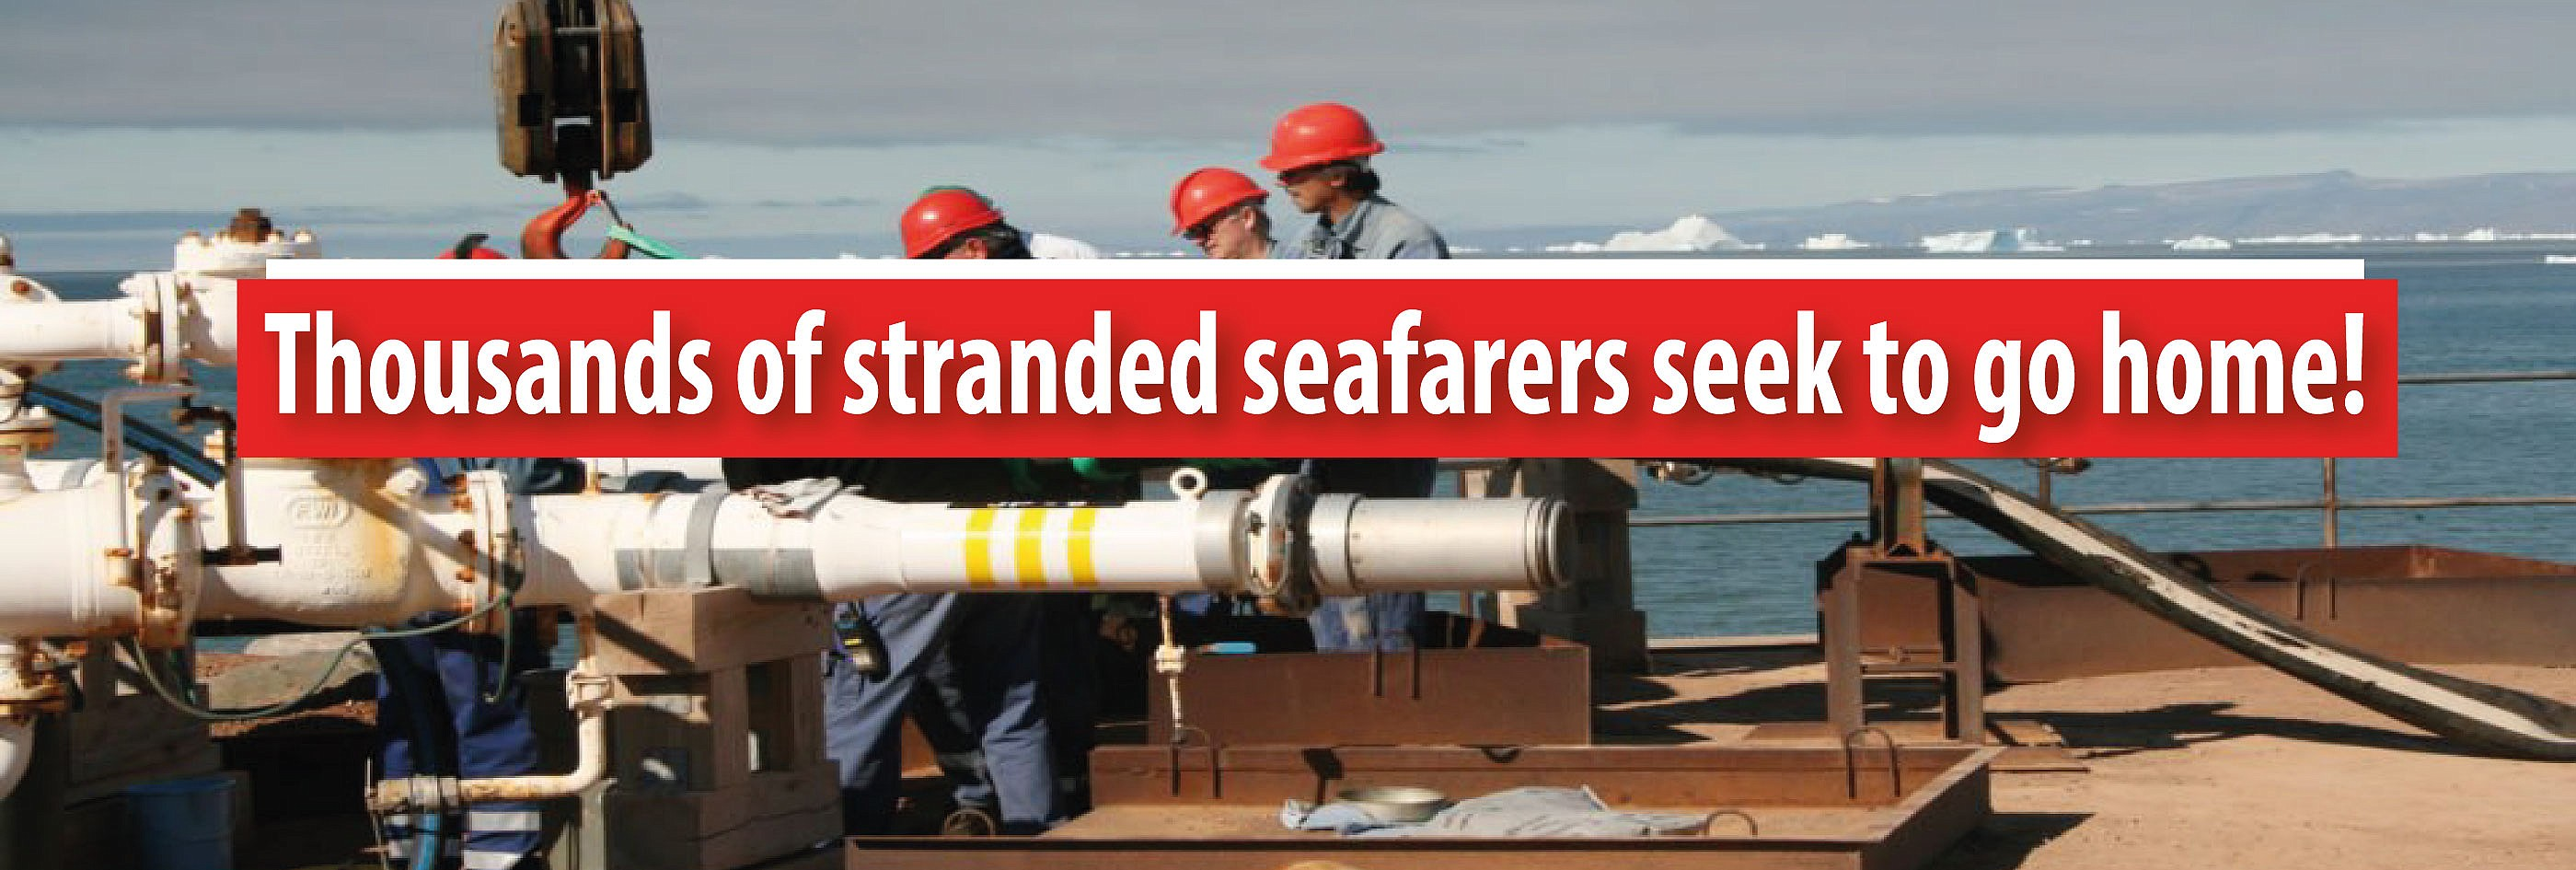 Thousands of stranded seafarers seek to go home!